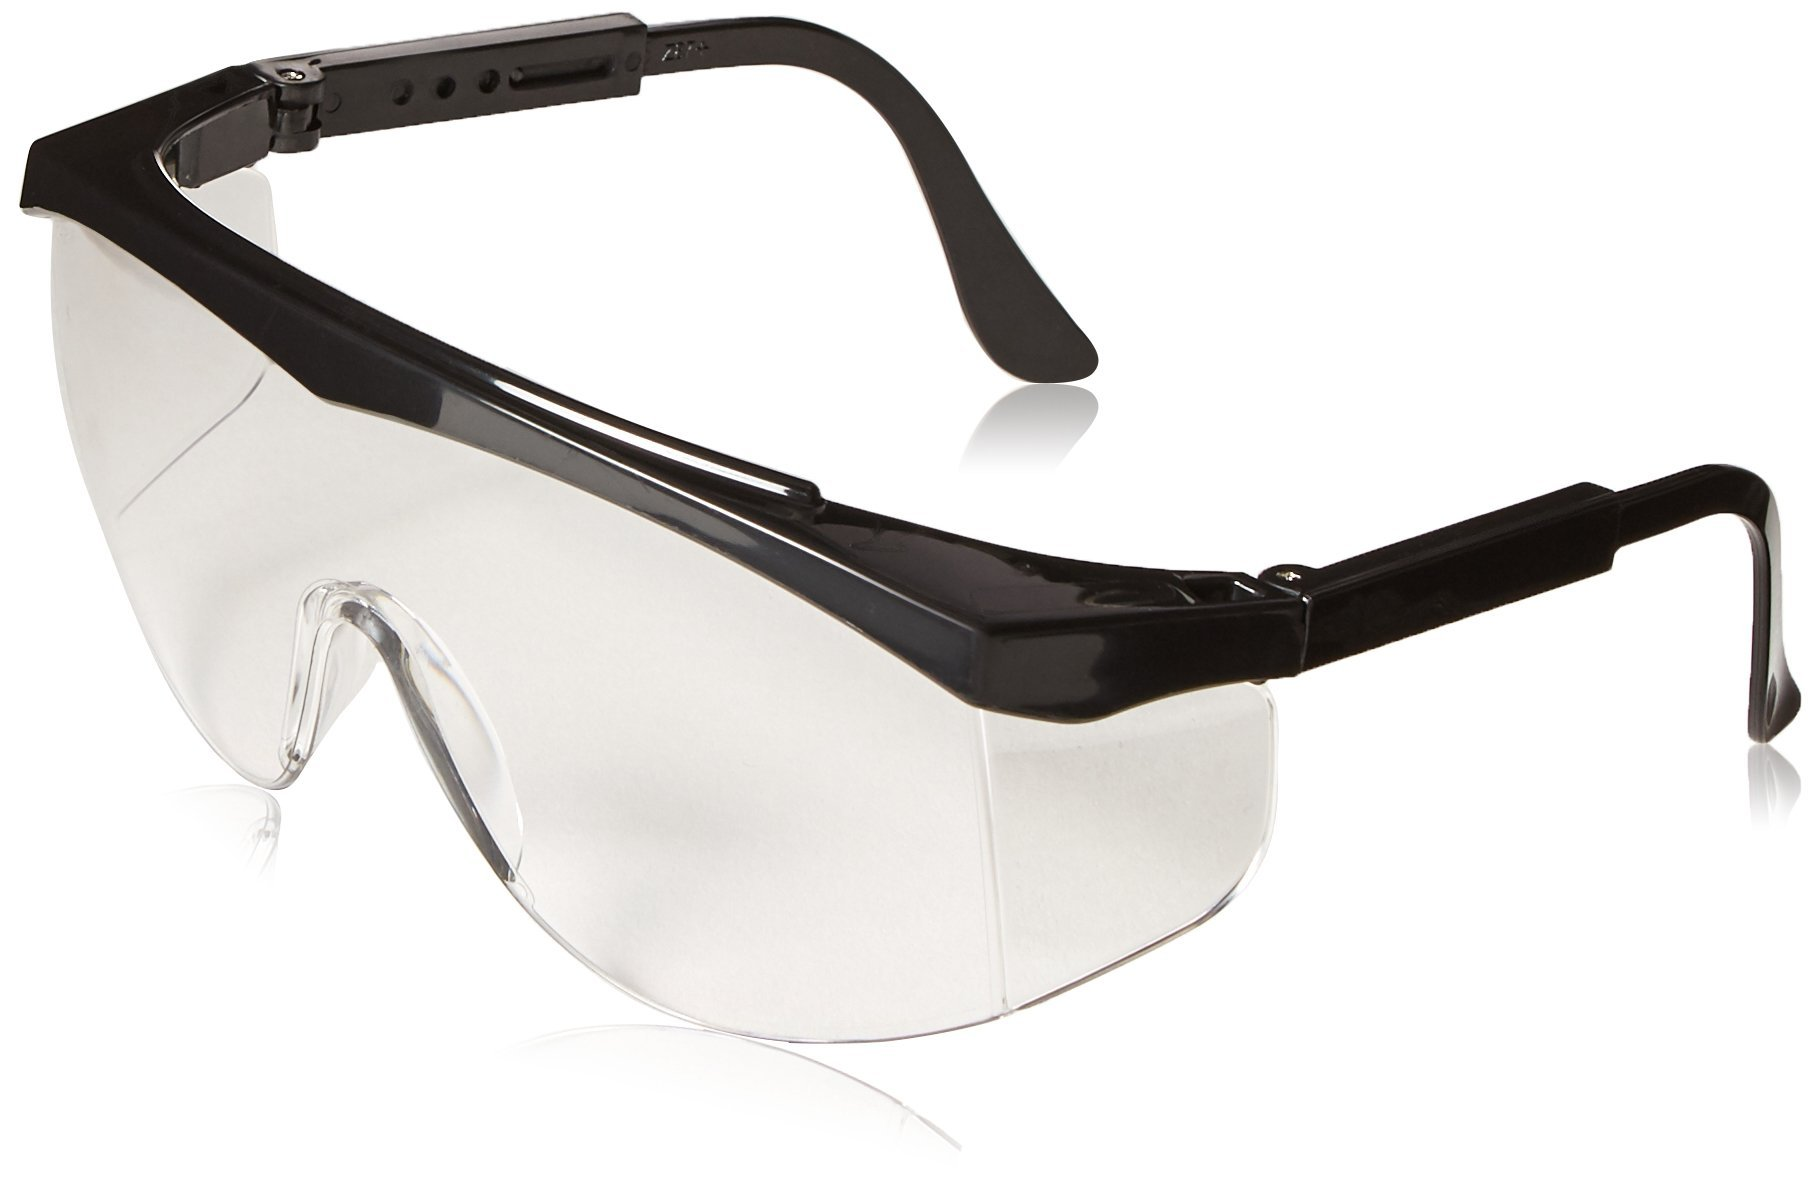 Crews SS010 Stratos Safety Glasses Polycarbonate Uncoated Lens, Nylon Black Frame, 1 Pair